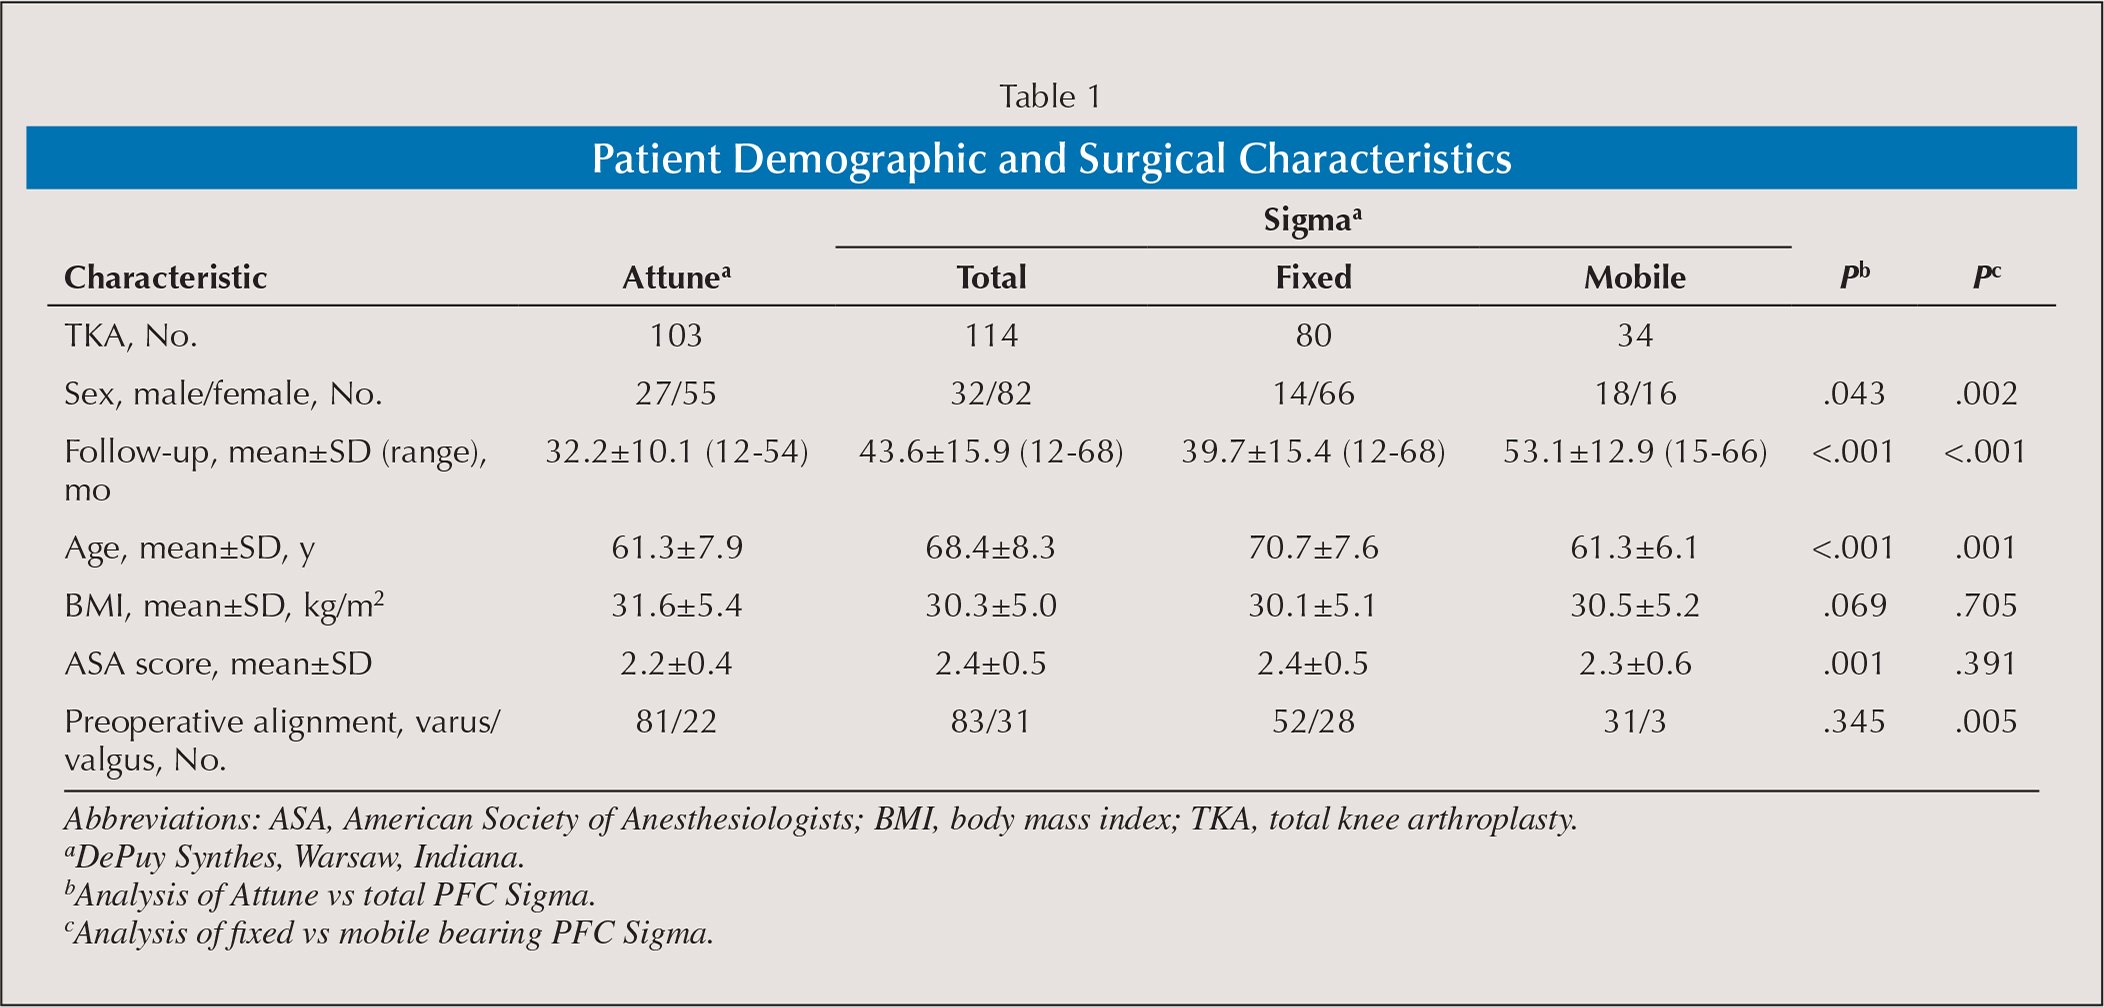 Patient Demographic and Surgical Characteristics